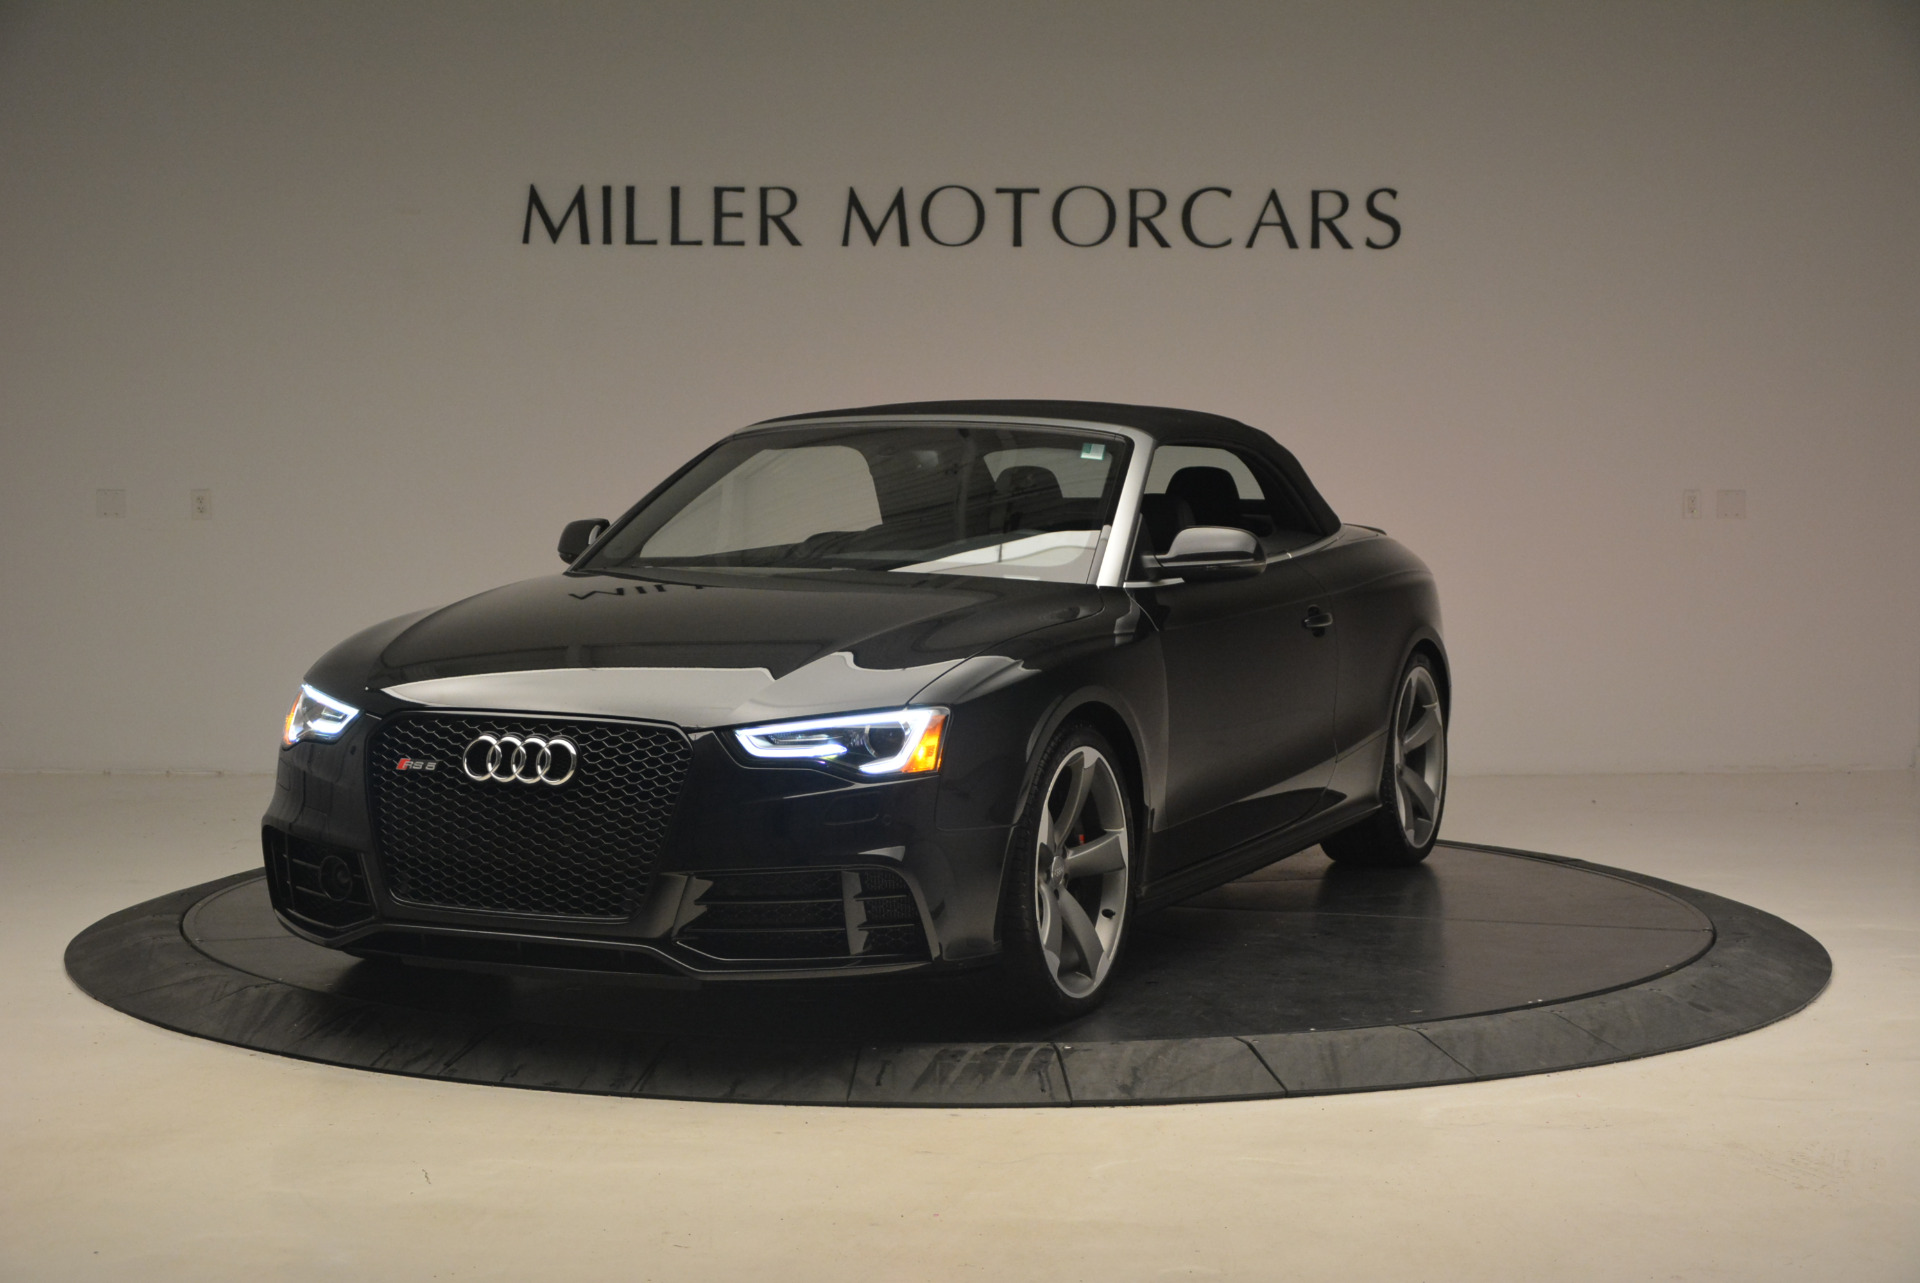 Used 2014 Audi RS 5 quattro For Sale In Greenwich, CT 1149_p13